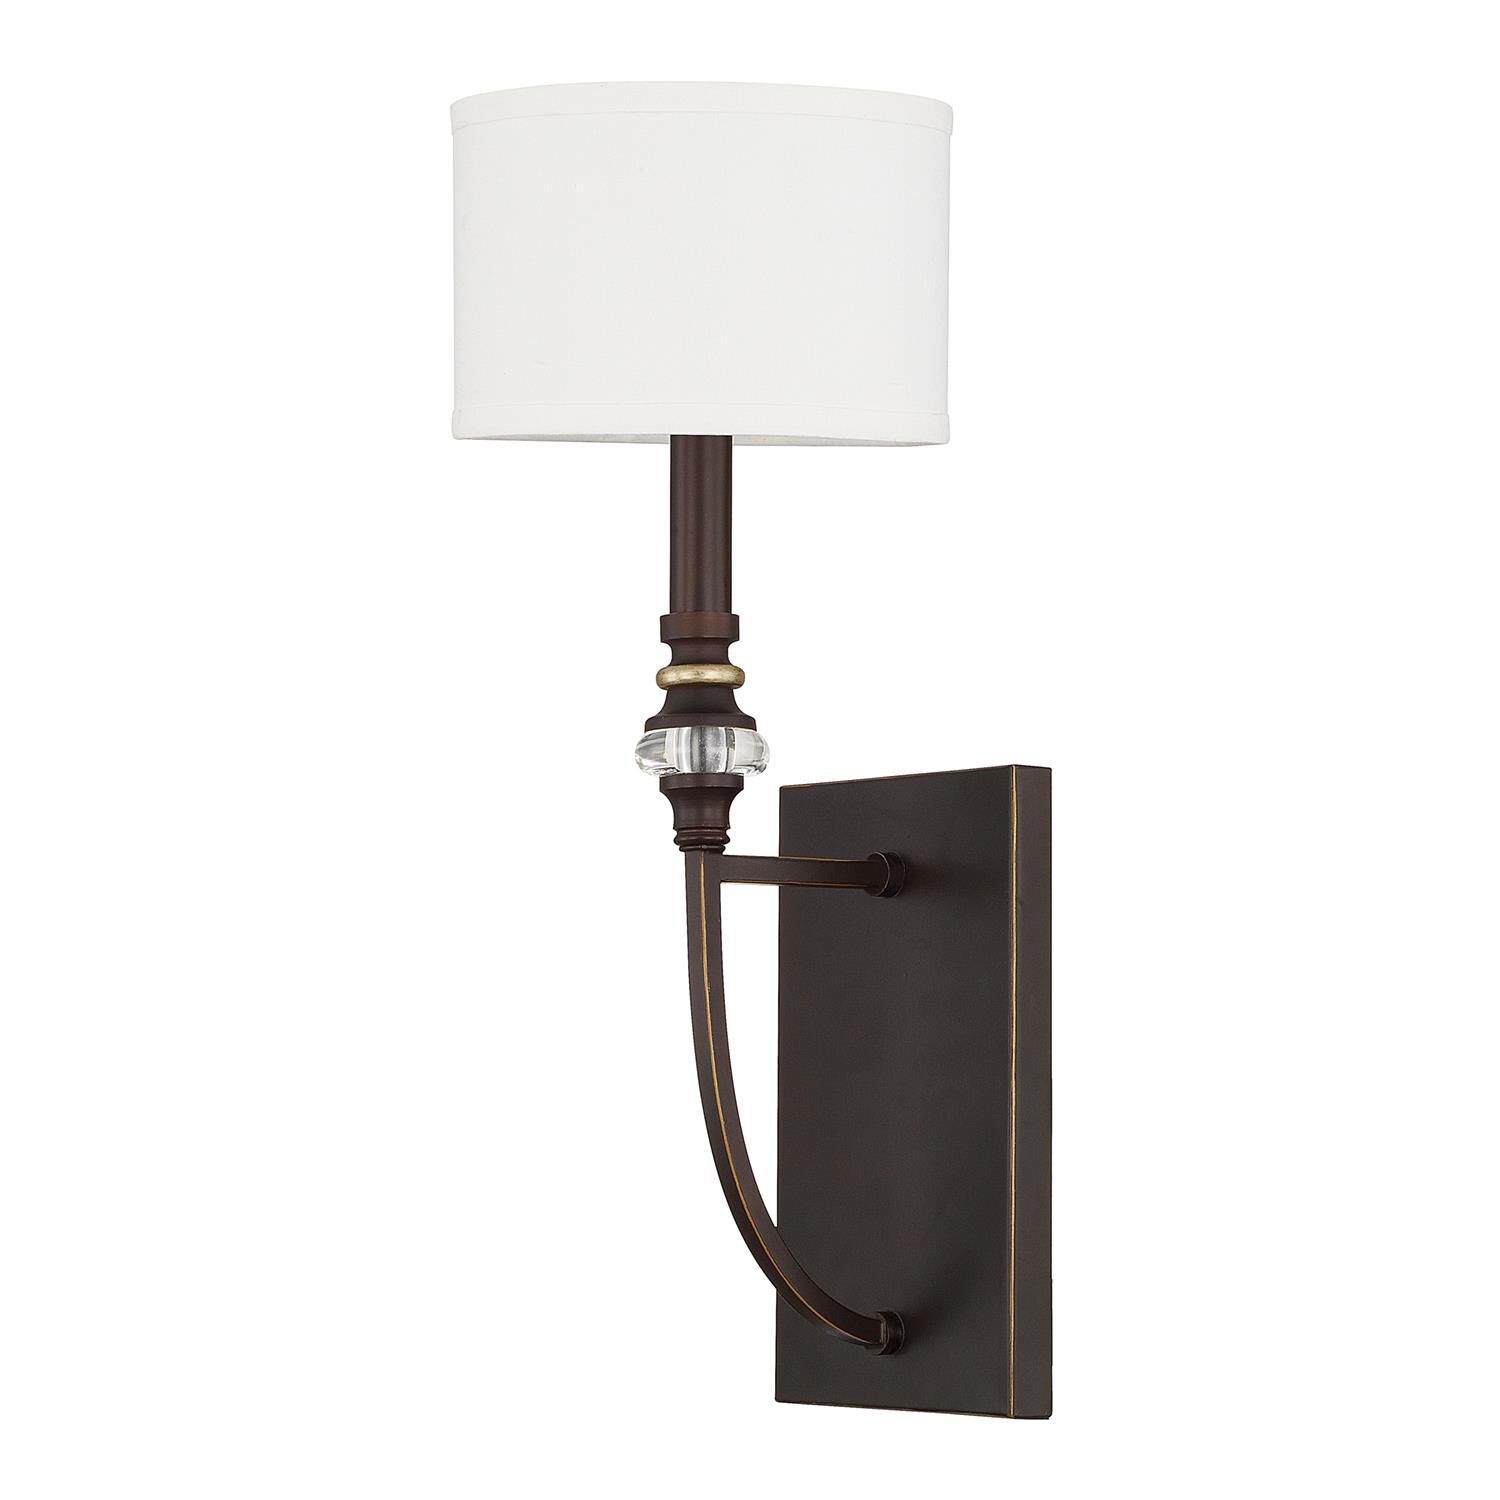 Capital Lighting Fixture Company Asher 7 Inch Wall Sconce Asher - 614911cz-660 - Traditional Wall Sconce